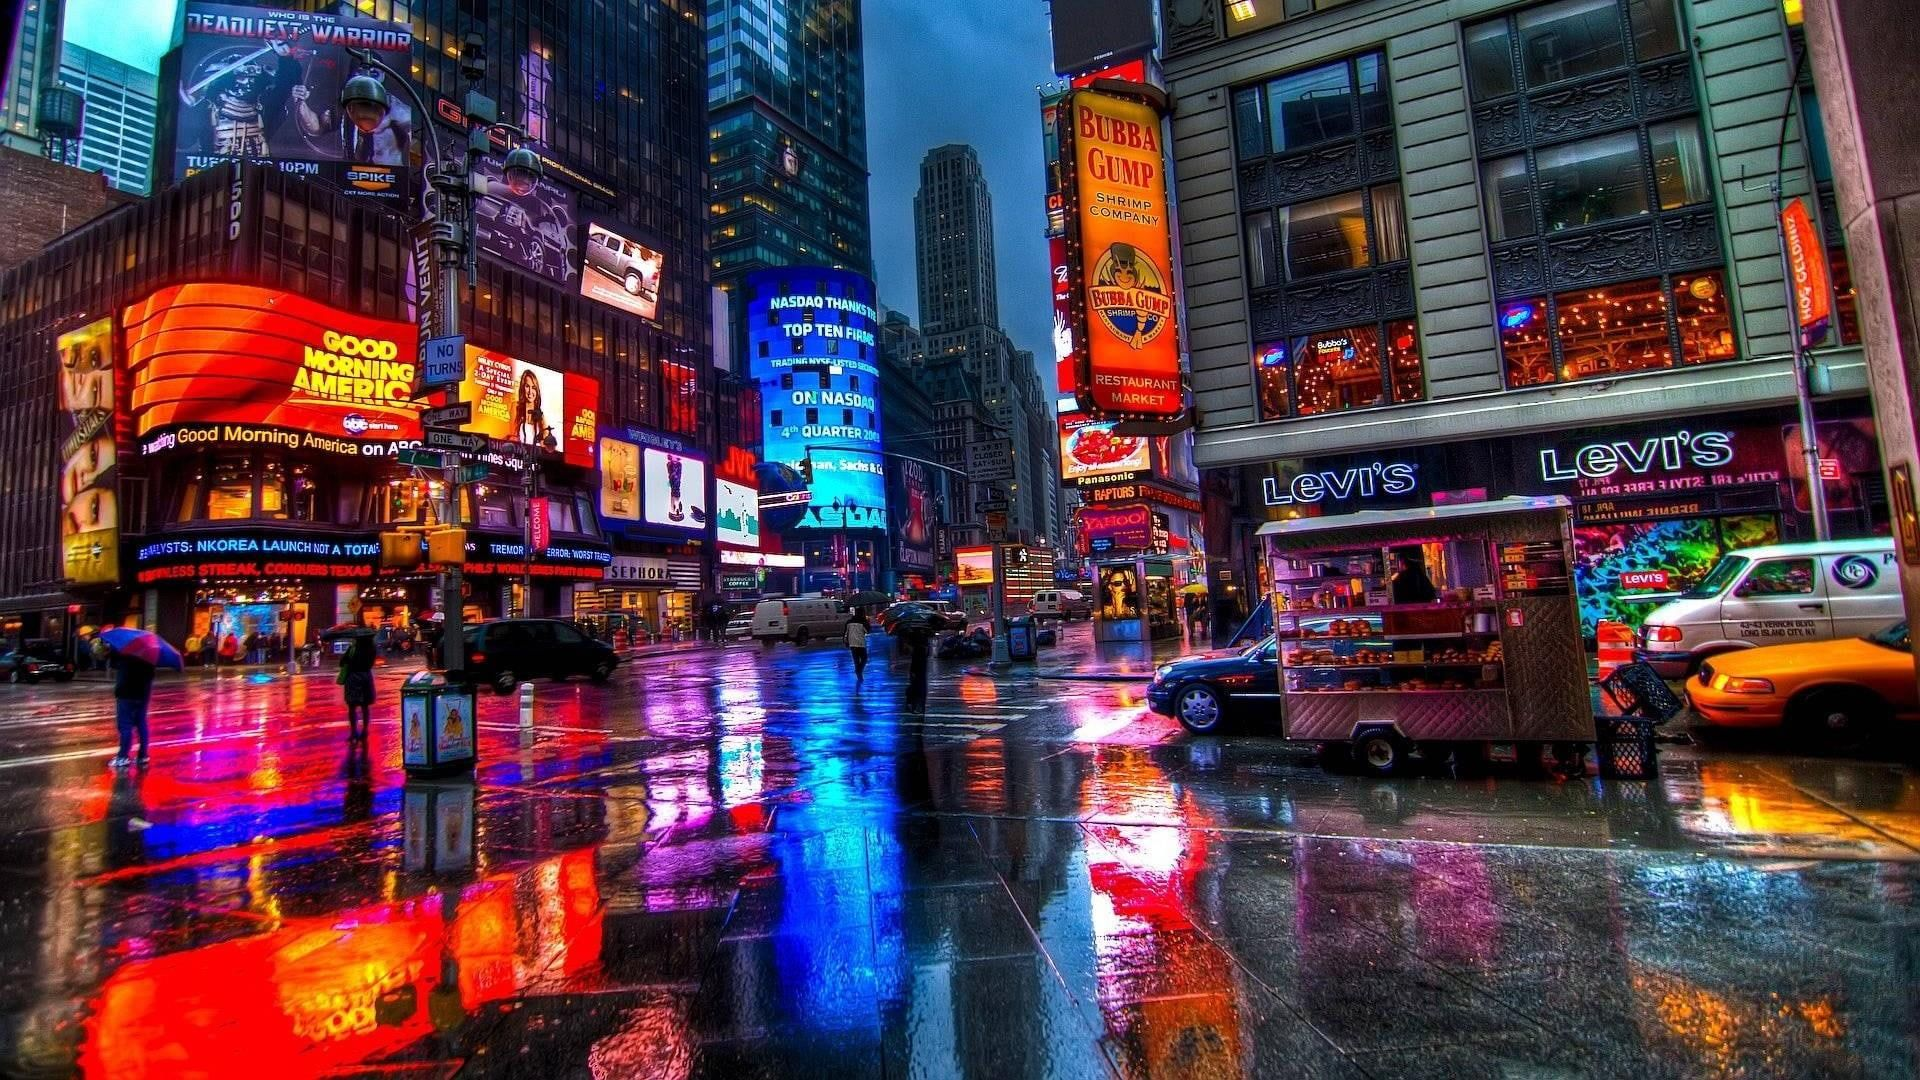 This Wallpaper Is About Wallpaper Reflection Manhattan Times Square New York Neon Sign Street In 2021 Times Square New York New York Wallpaper Cityscape Wallpaper